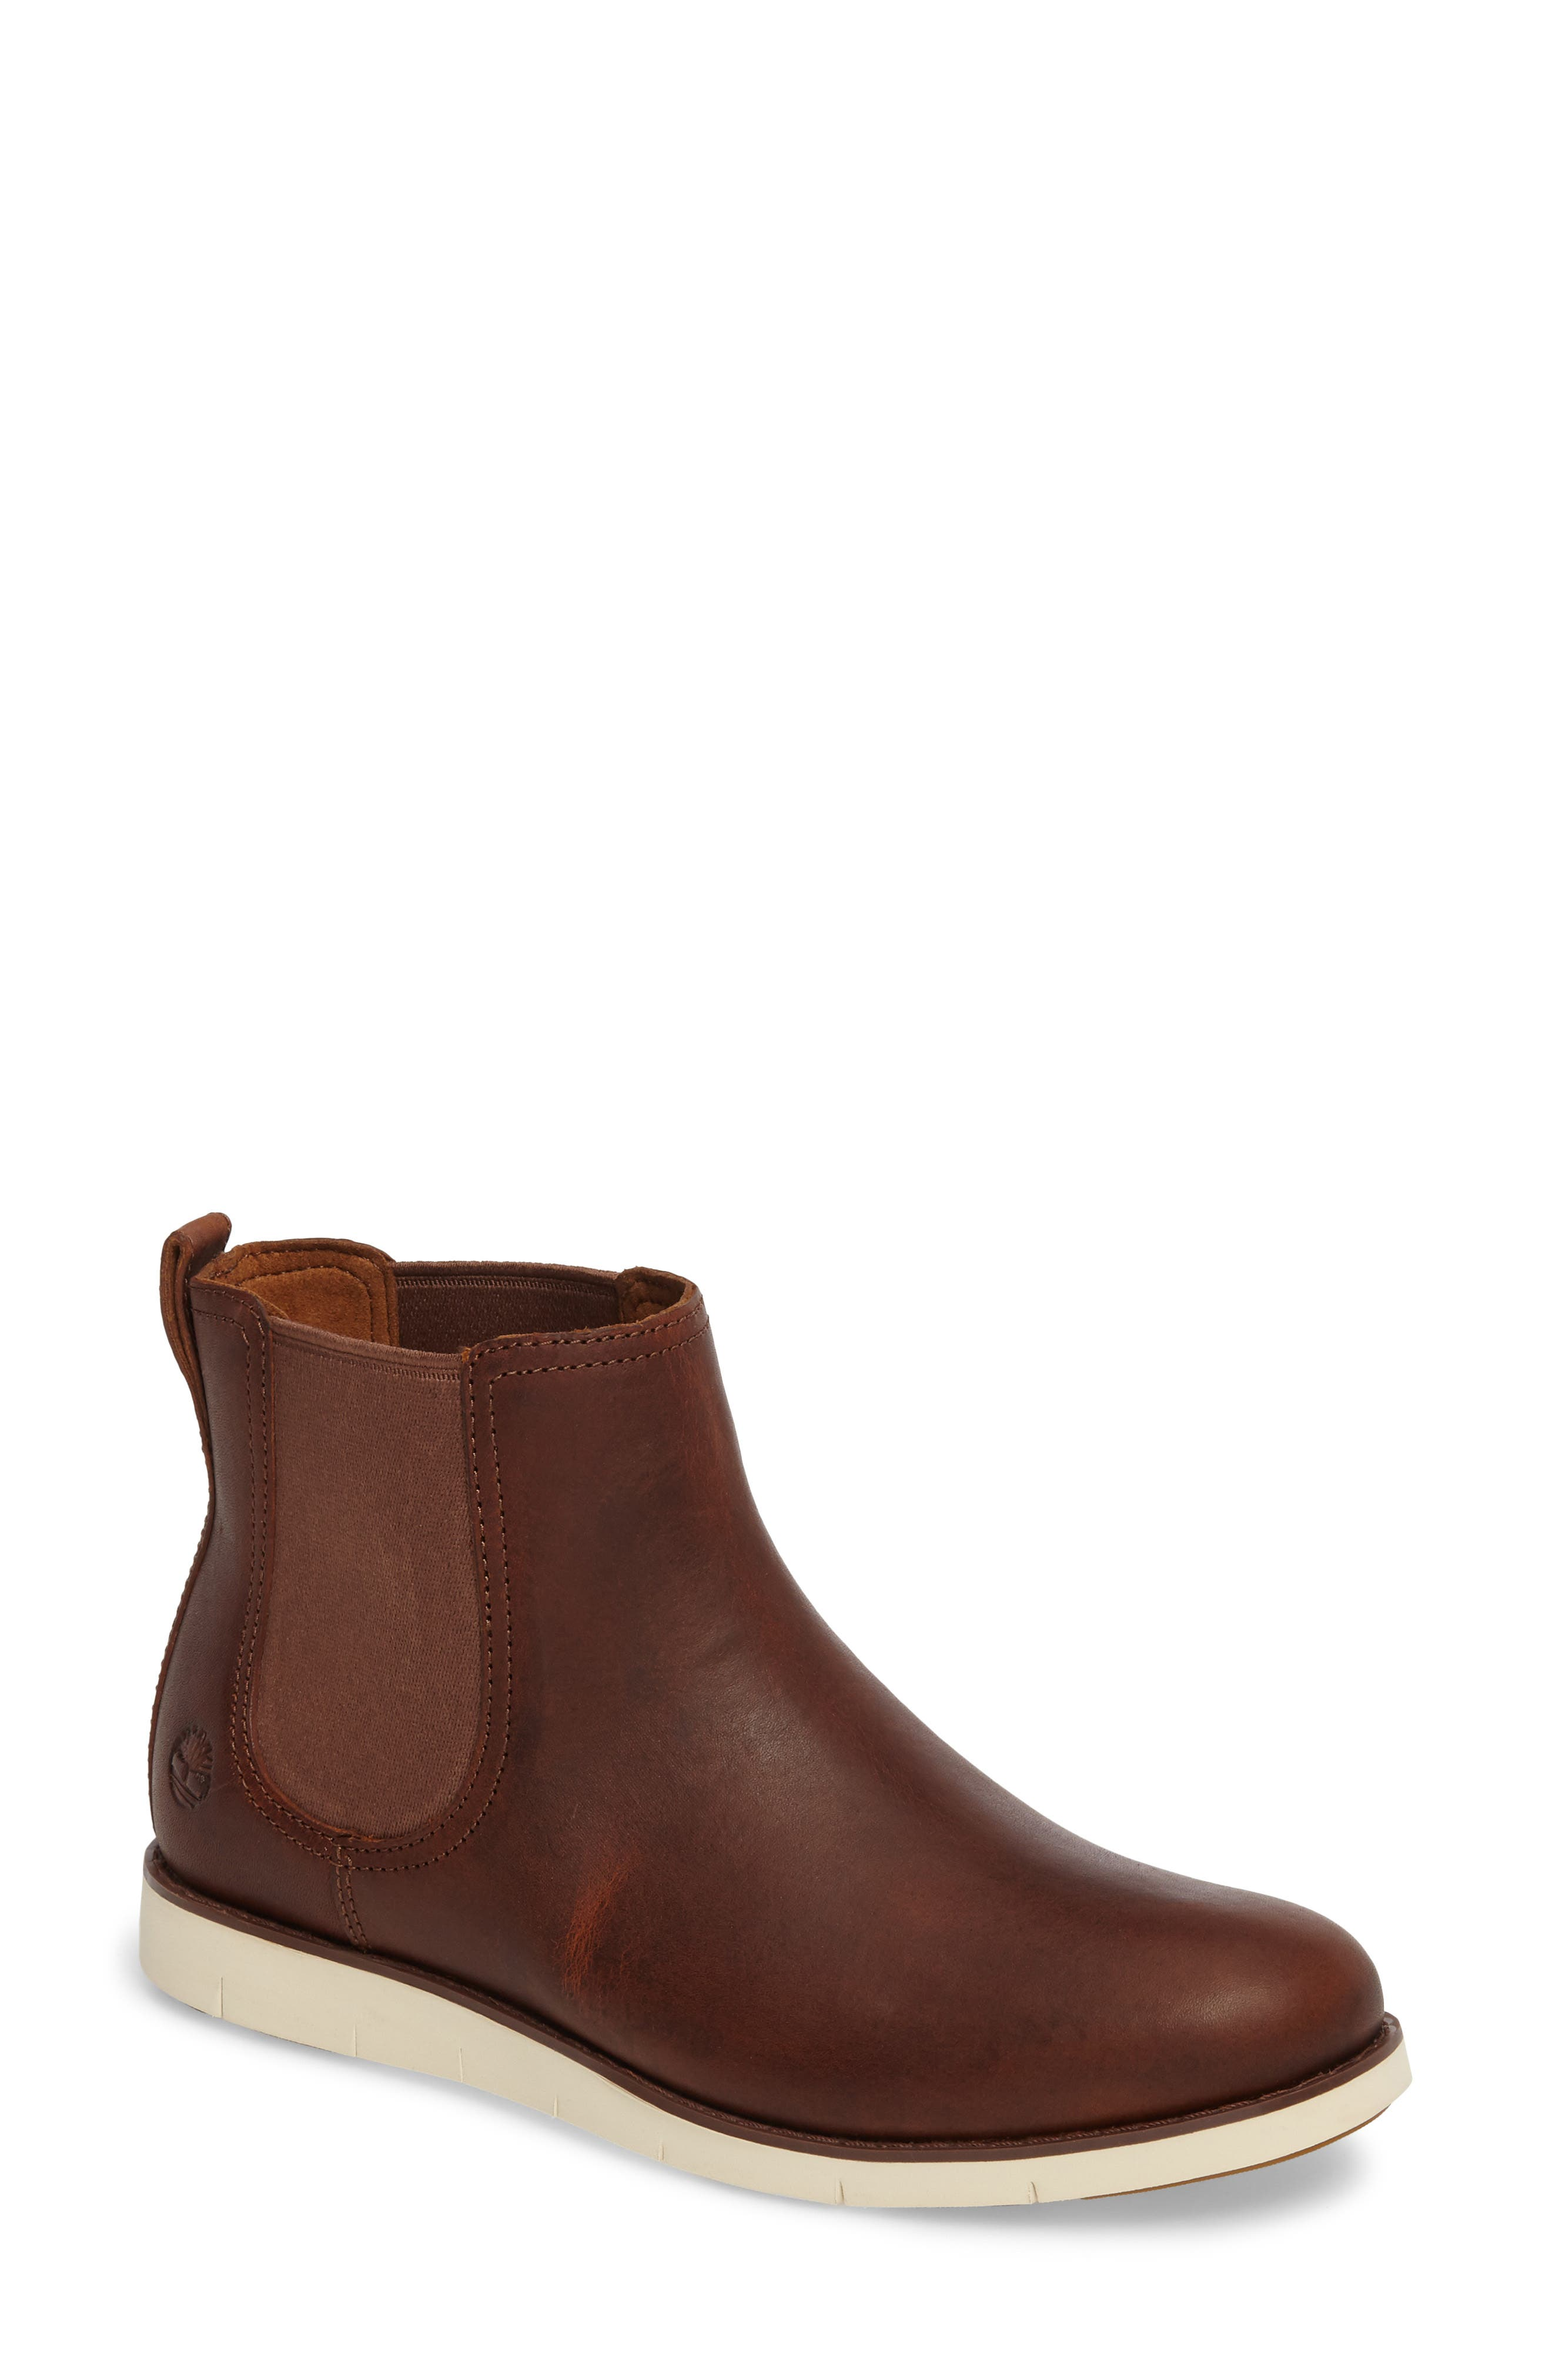 Timberland Lakeville Chelsea Boot (Women)